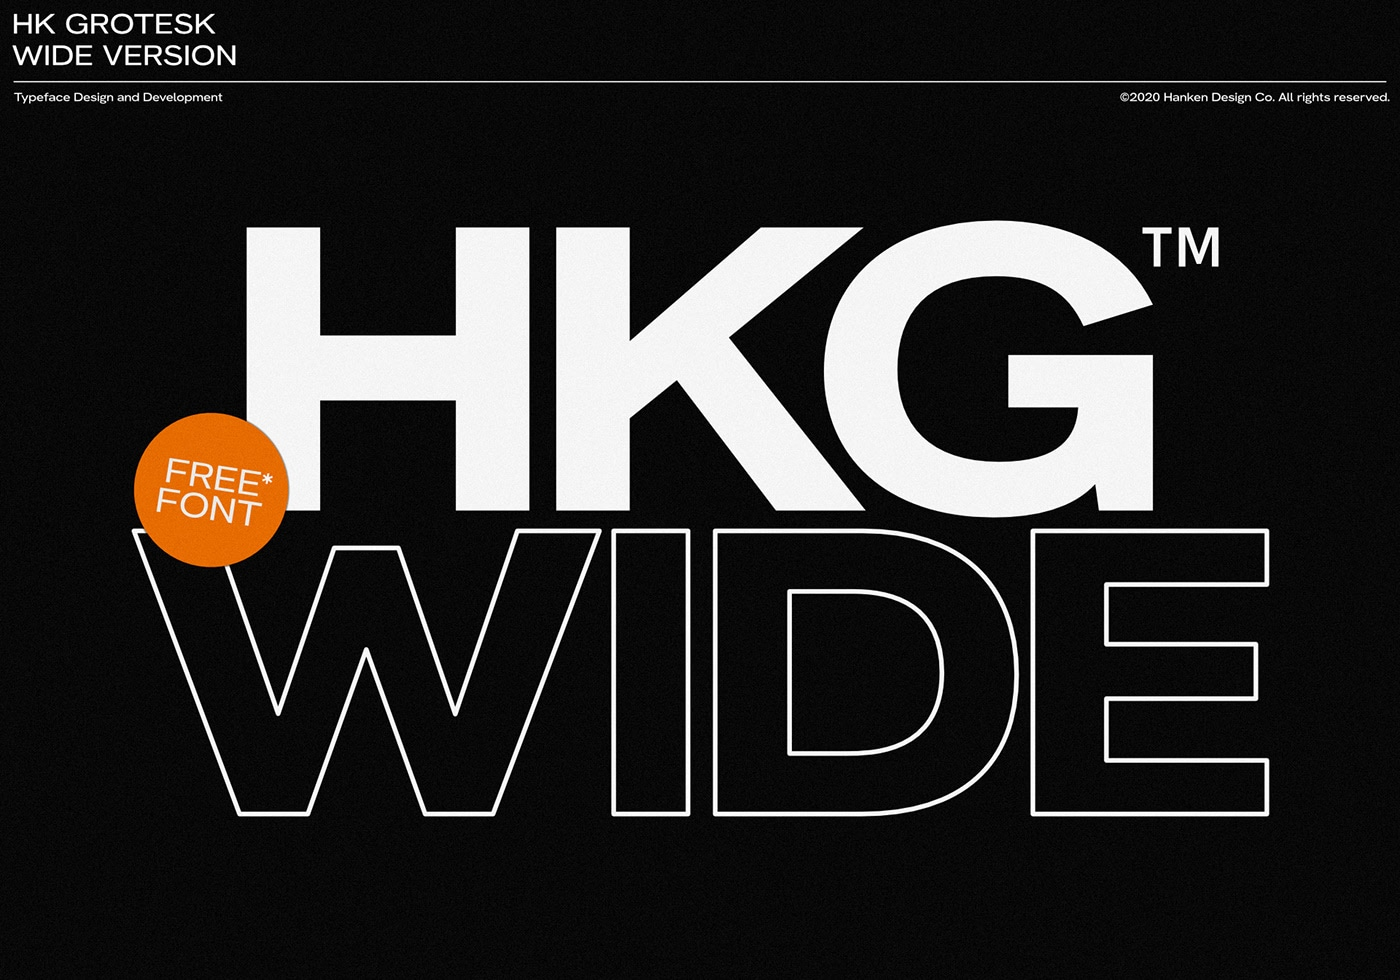 HK Grotesk Wide free font by Hanken Design Co